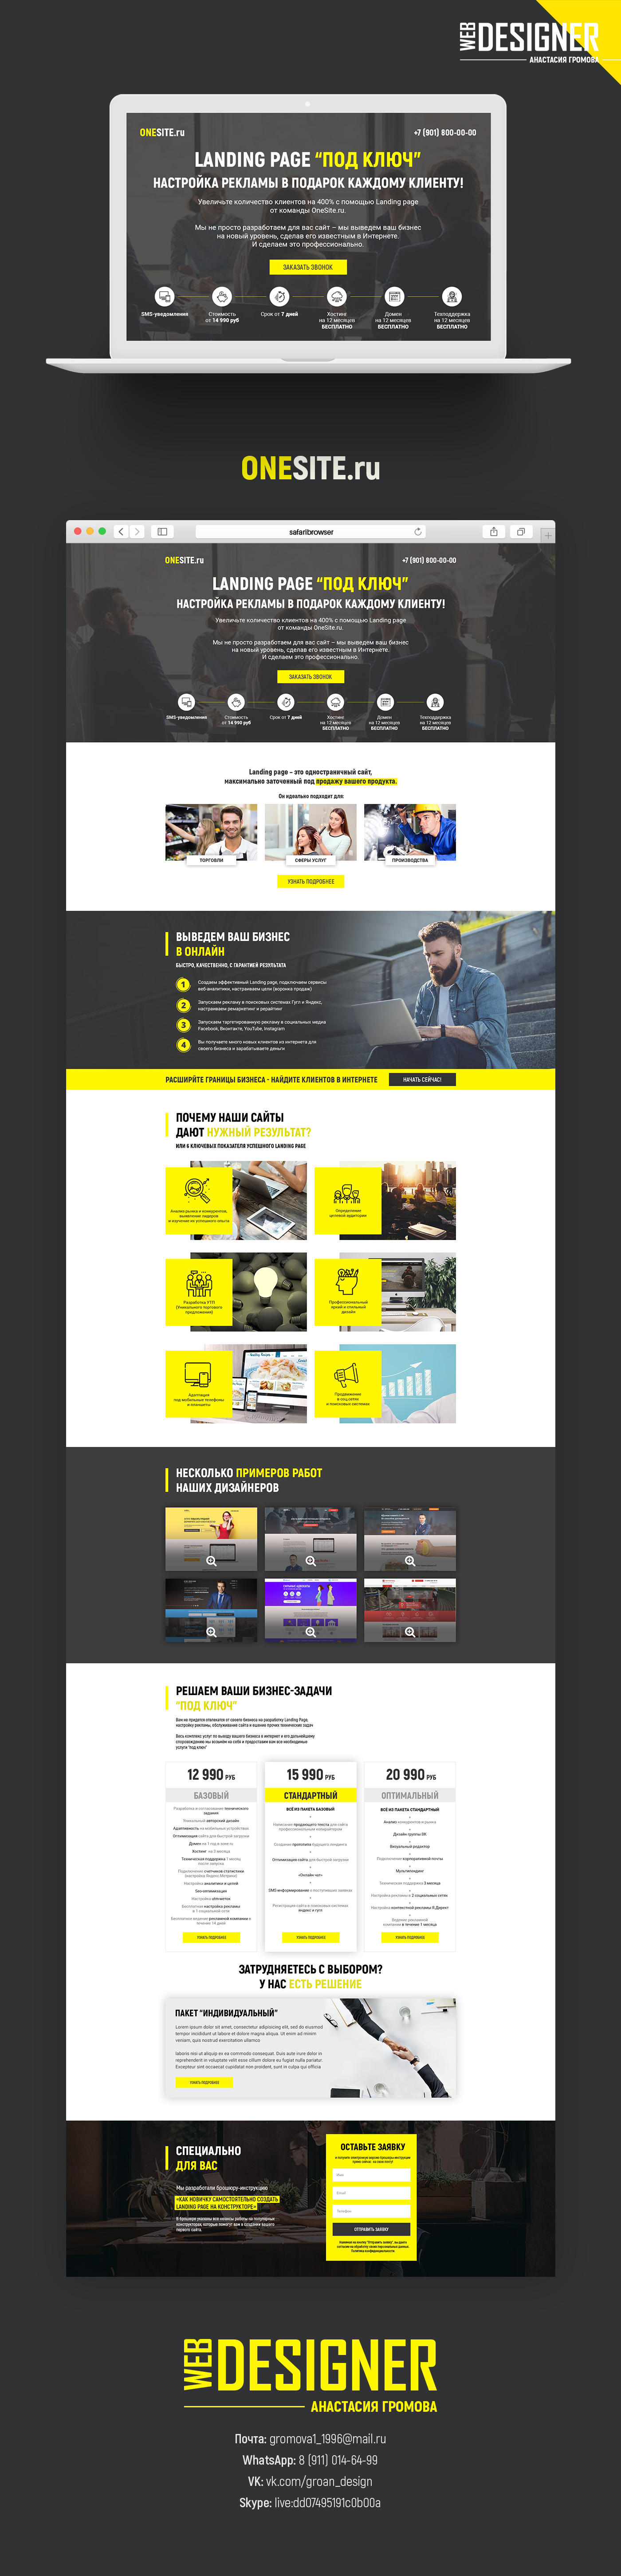 Landing page One site